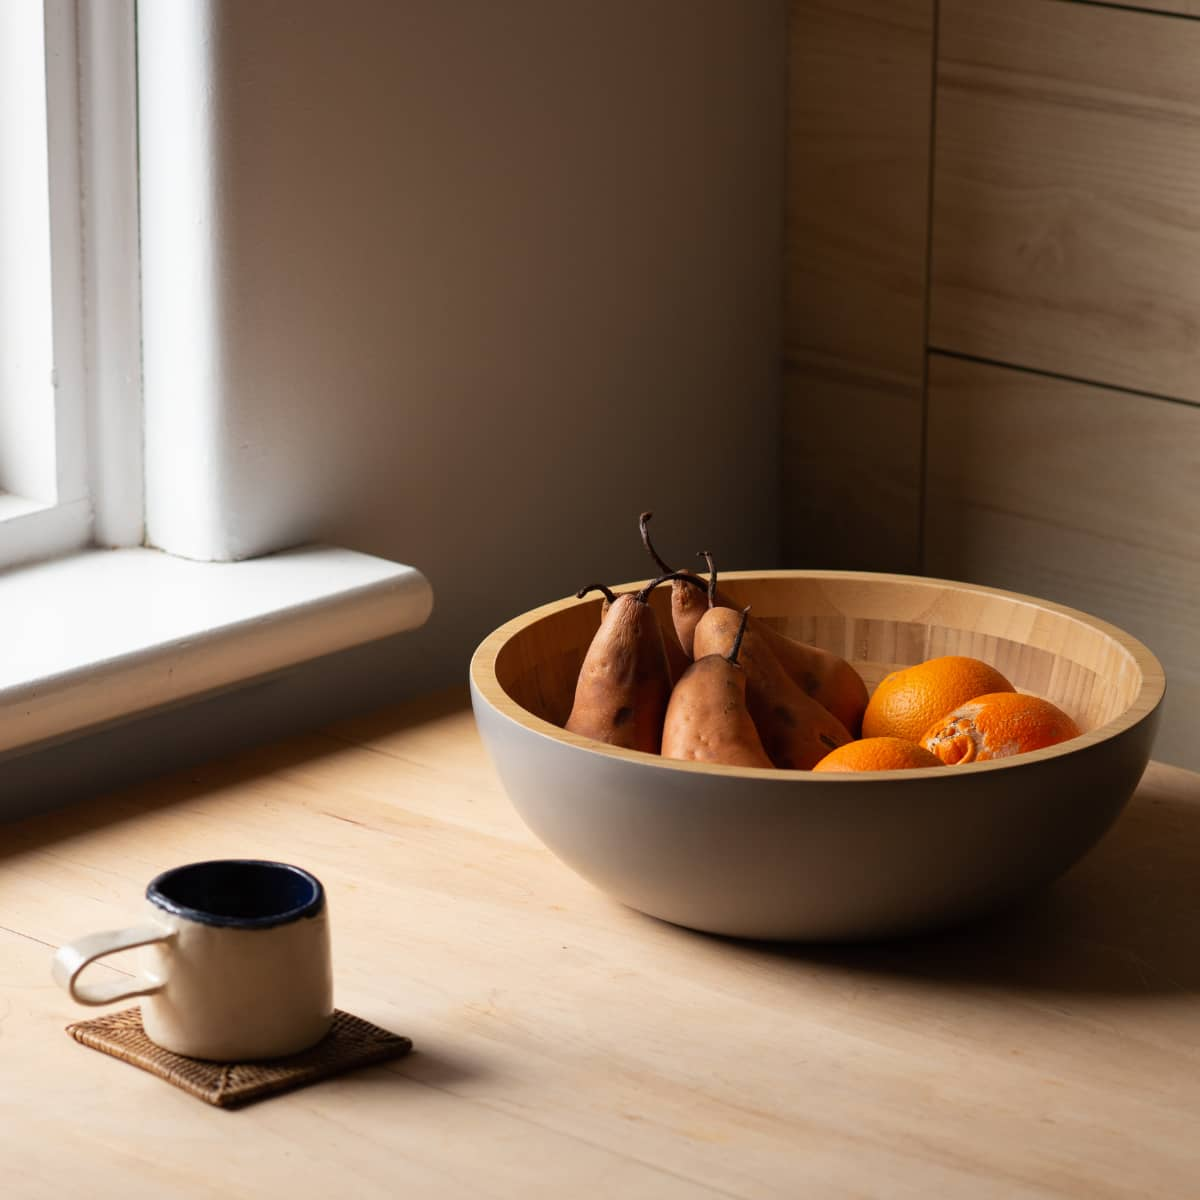 A mug and bowl of fruit sitting on a table in front of a window.